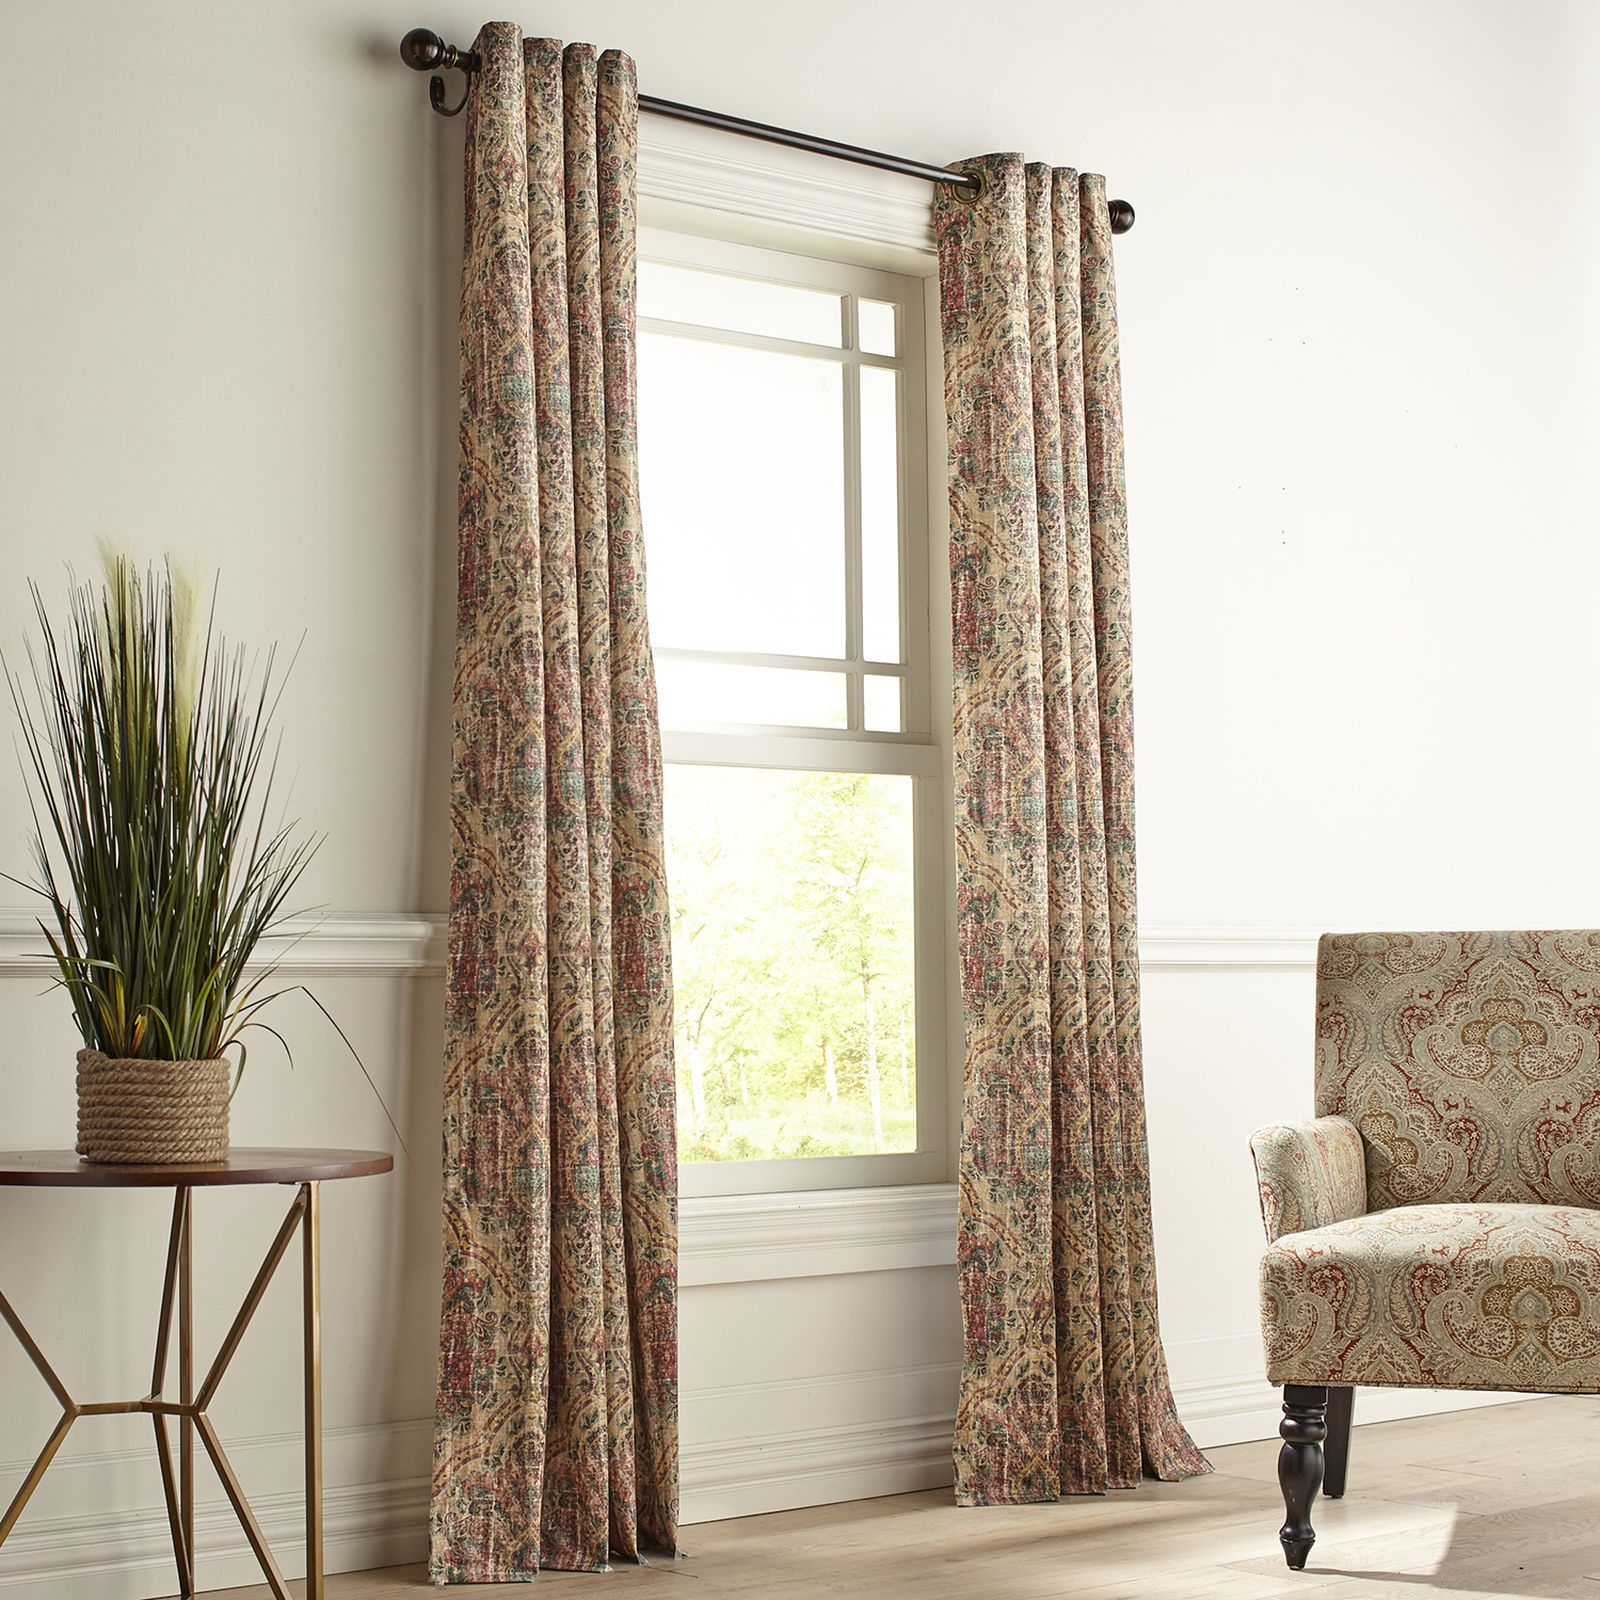 Pier One Curtains Clearance.Harlowe Gold Grommet Curtain Pier 1 Imports Curtains